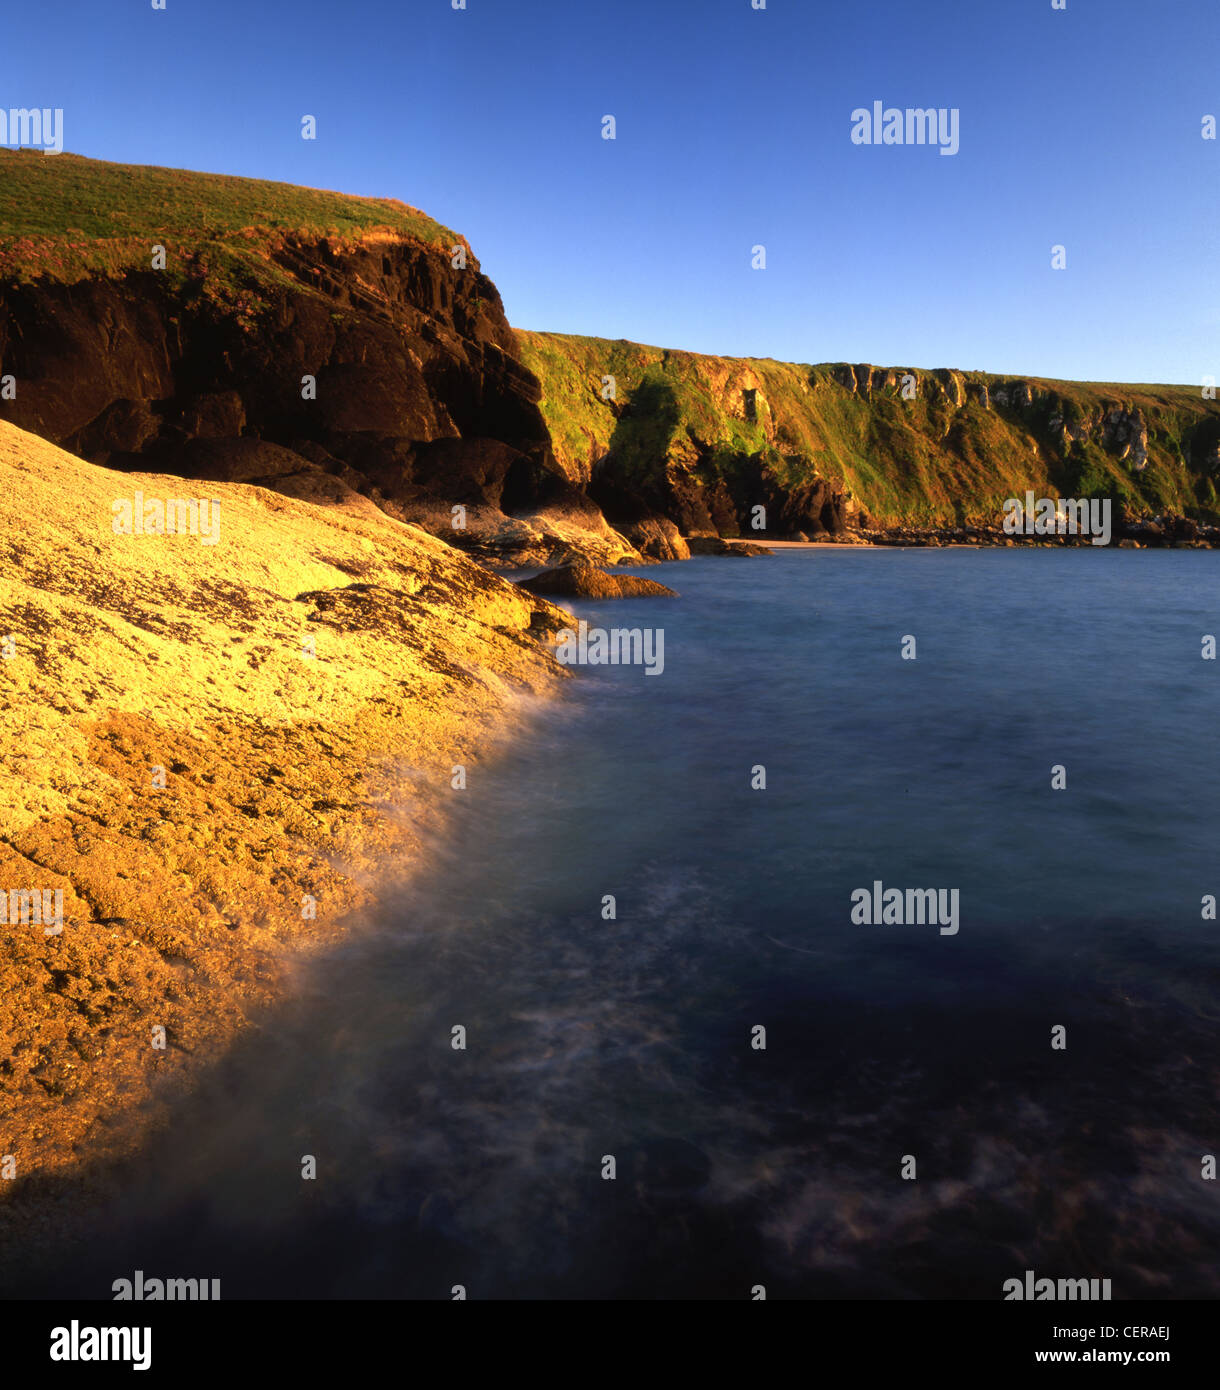 Musselwick Sands near Marloes. It is a lovely secluded beach guarded by high cliffs. - Stock Image